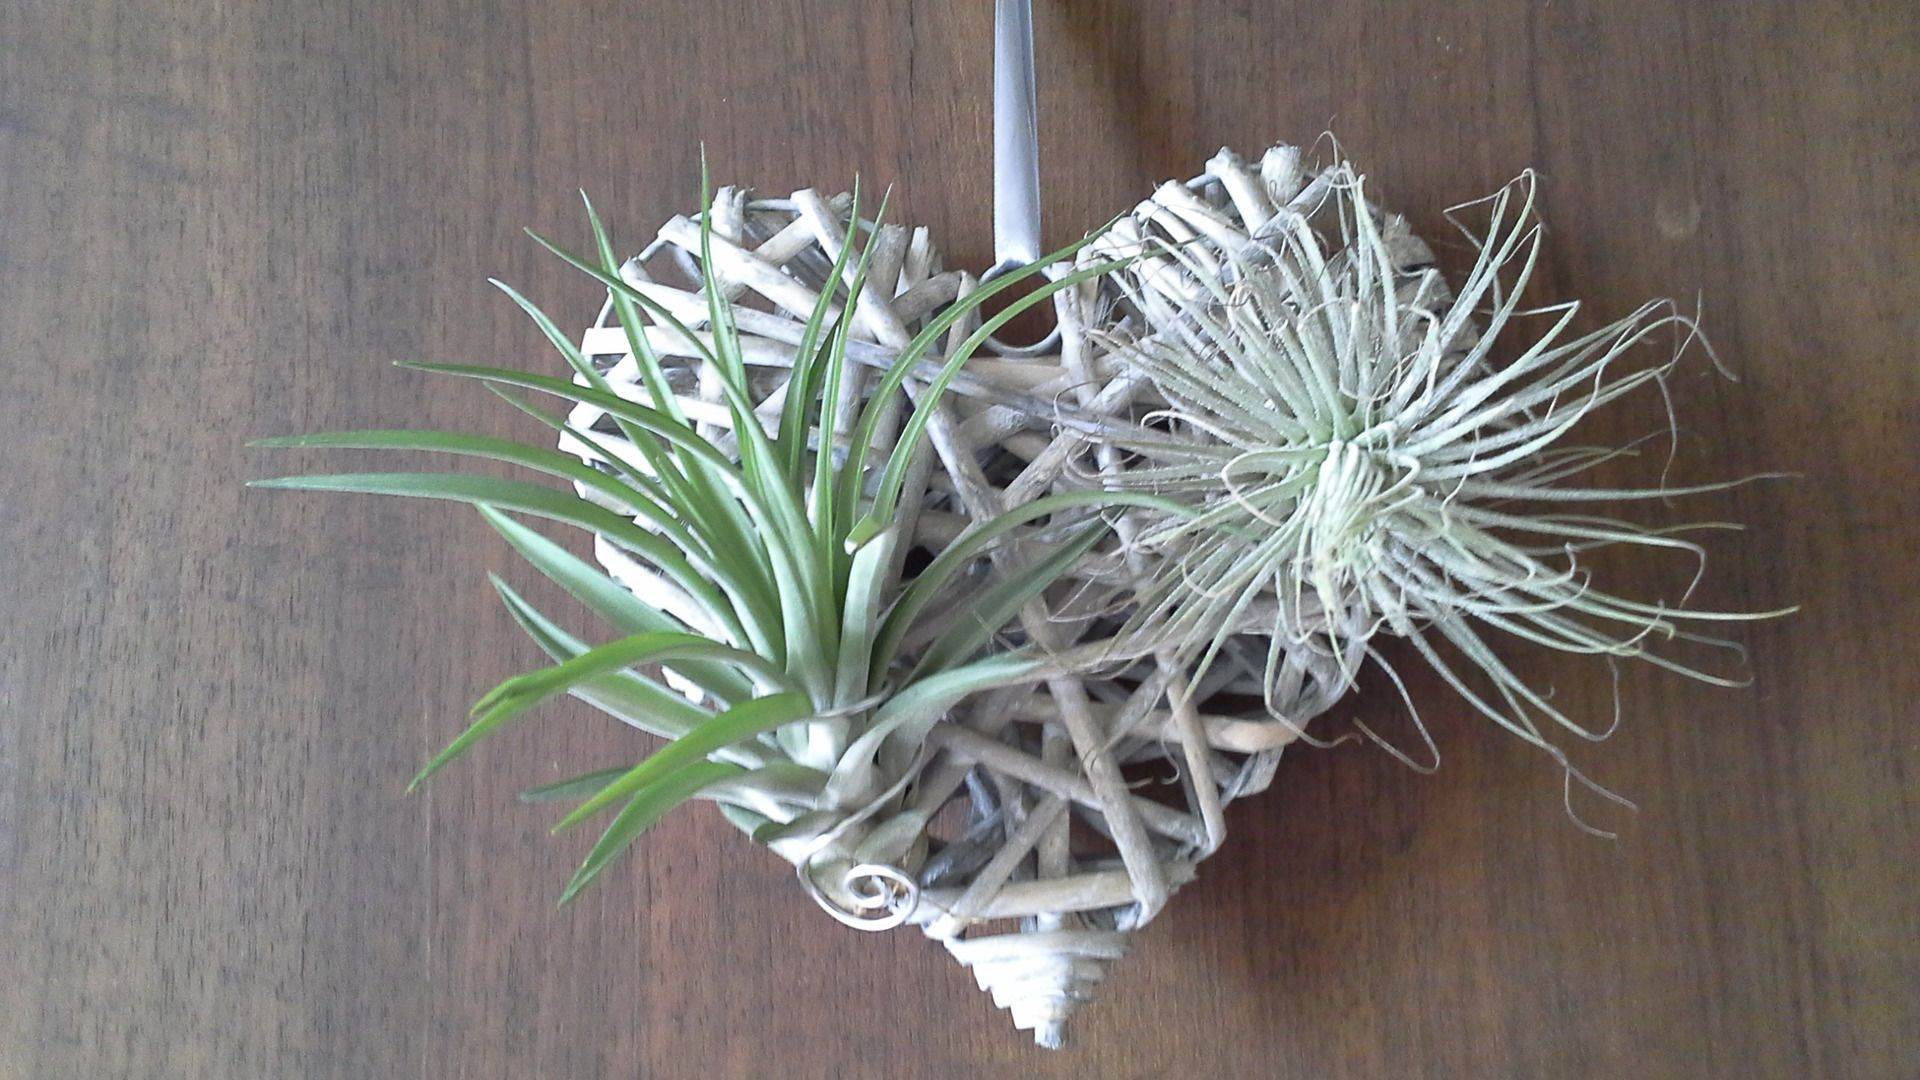 Les Tillandsias Filles De L Air cadeau original ⚓ tillandsia ⚓ fille de l ' air ⚓ plante